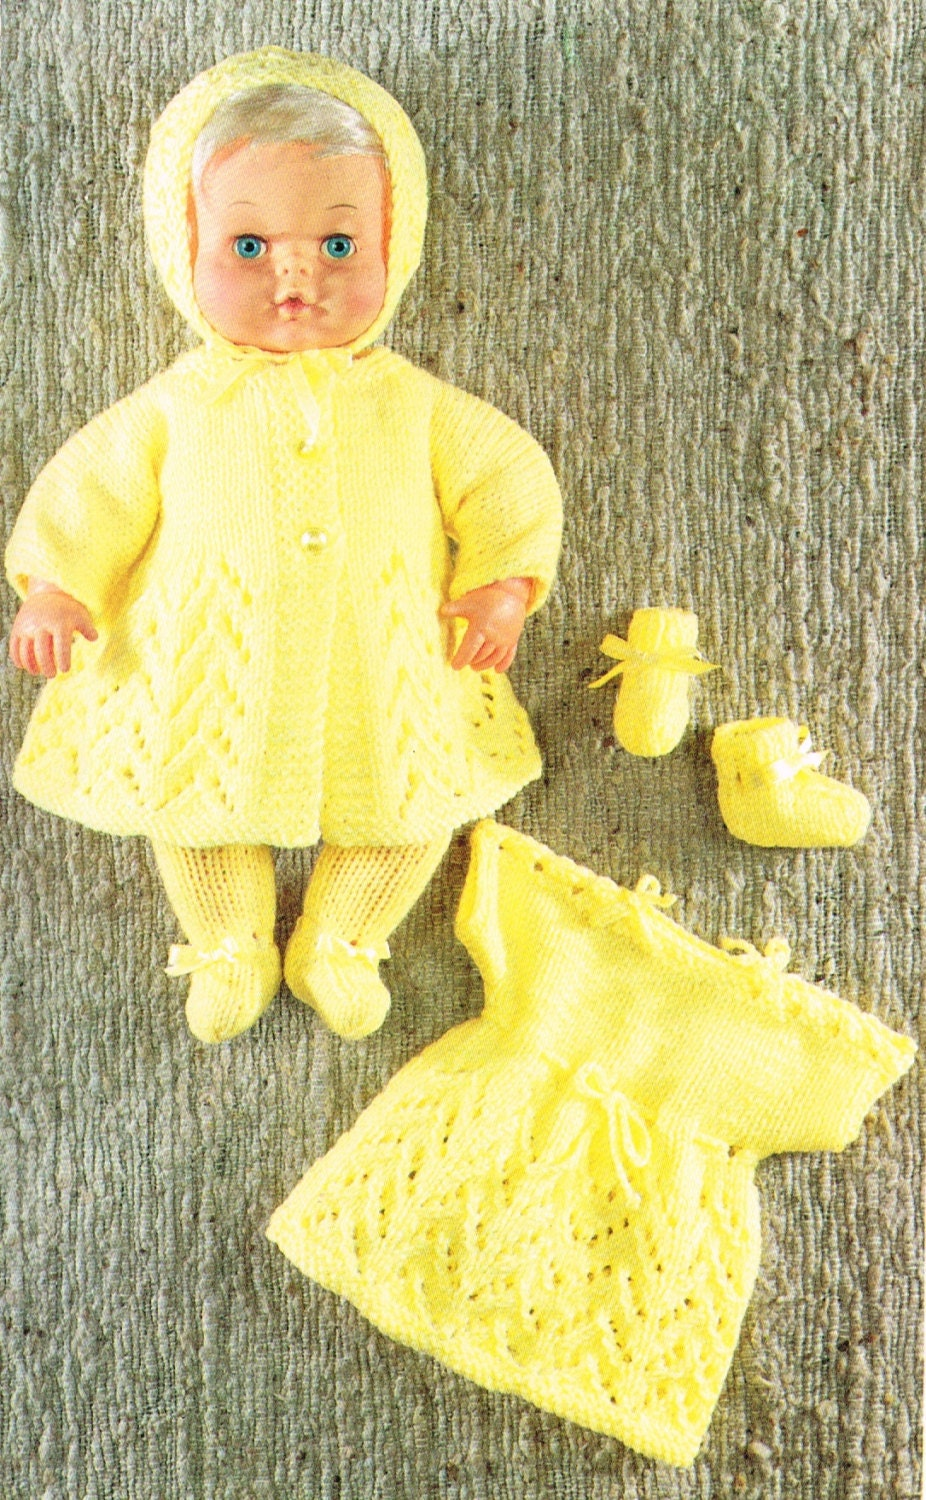 Knitting Patterns For Dolls Clothes 12 Inch : Dolls clothes knitting pattern for 12 & 16 doll.